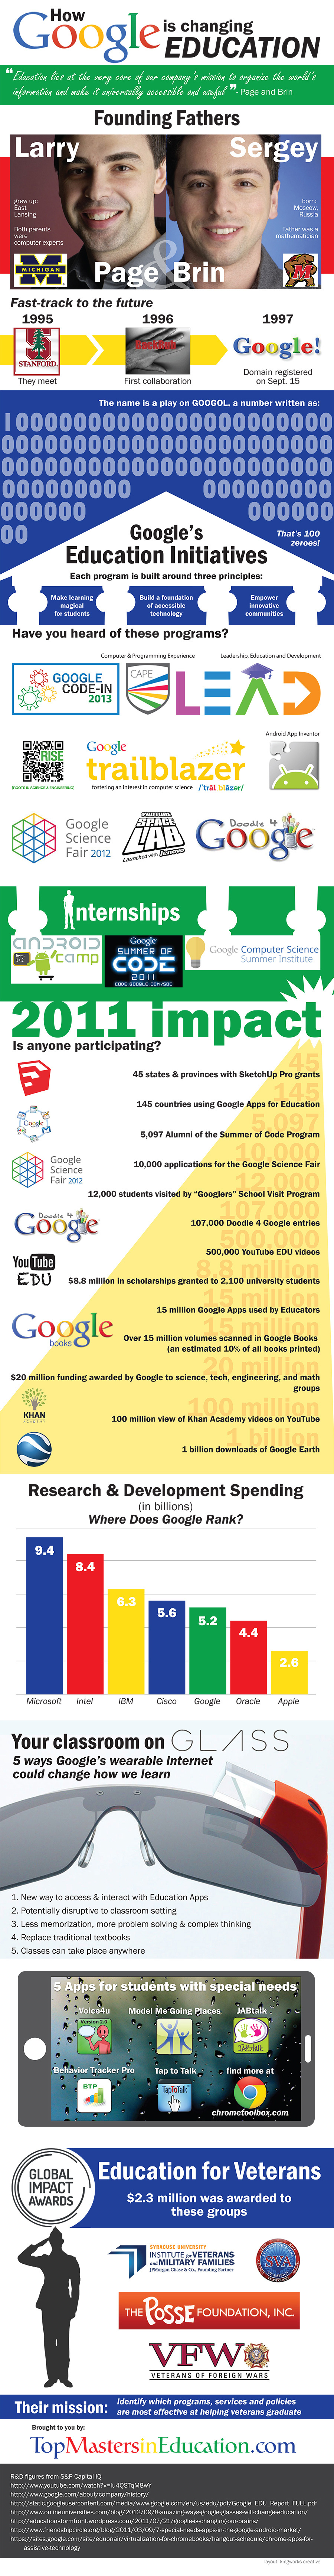 google education 900